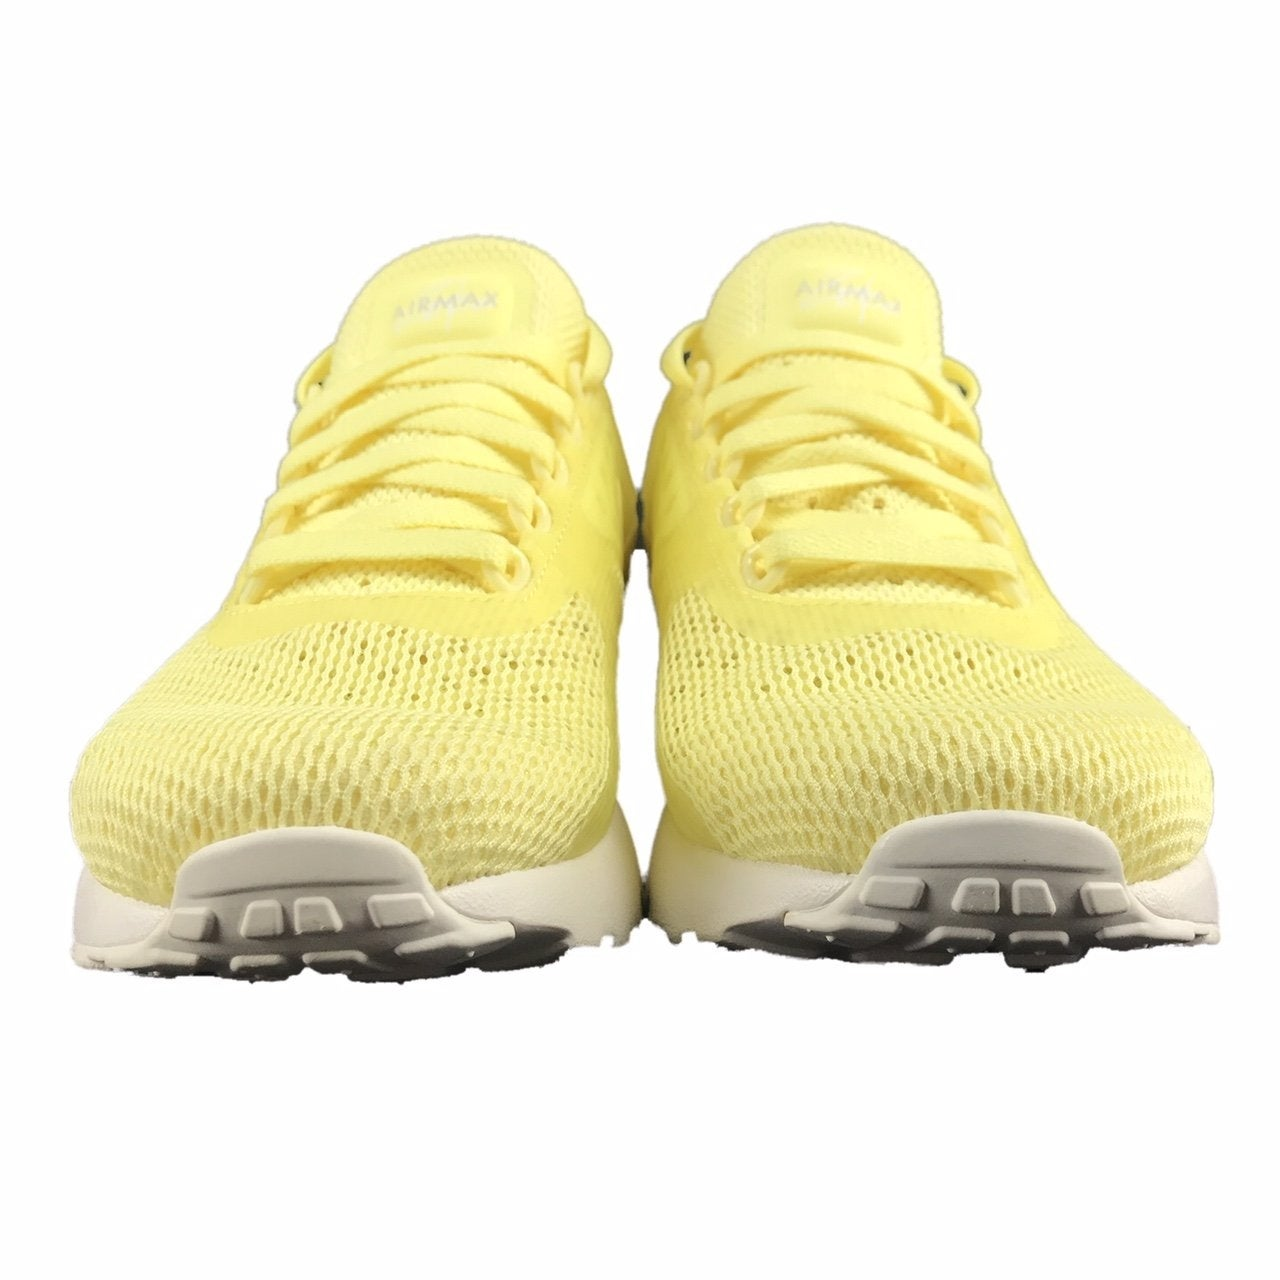 on sale dd126 930d5 Men's Nike Air Max Zero BR Shoe, Lemon Chiffon/Lemon Chiffon, 8 B(M) US